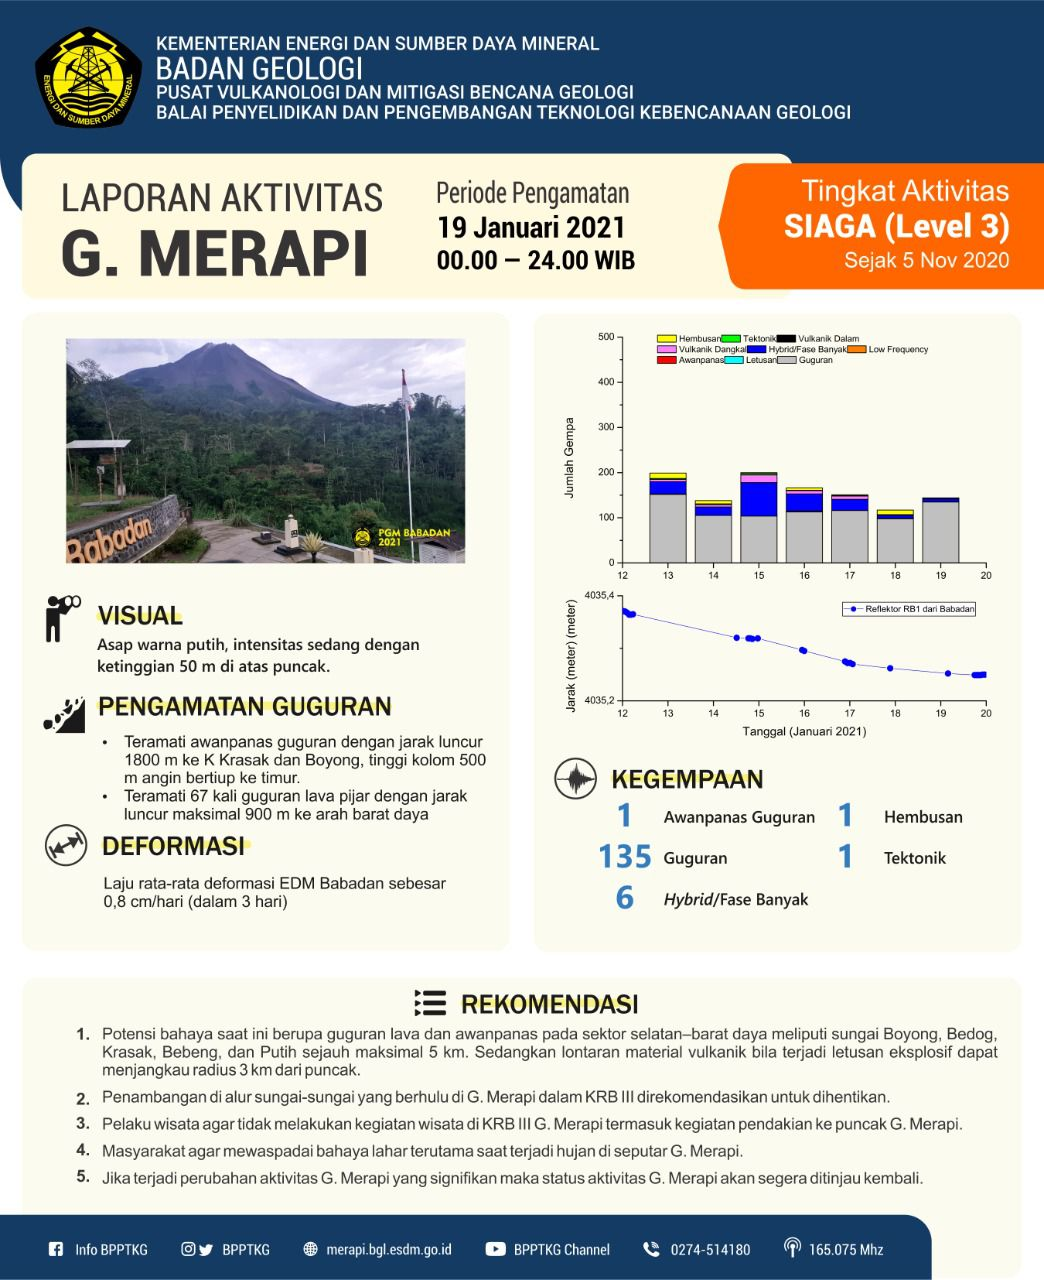 Merapi - activity on 01.19.2021 - and detail of the seismicity on 01.19 / 00-24h - Doc. BPPTKG